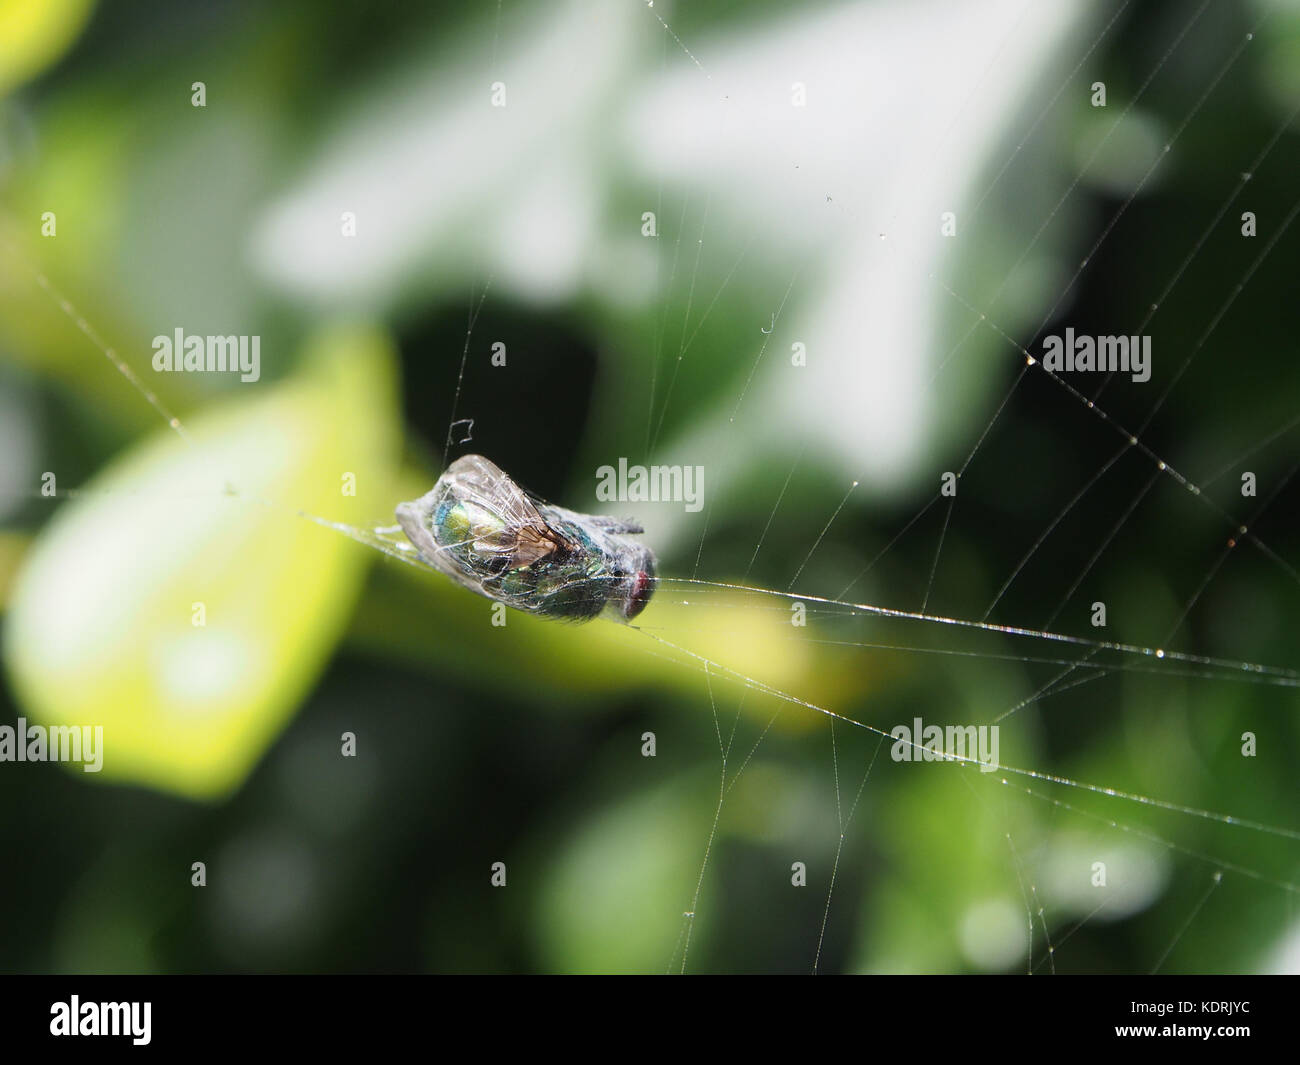 A wasp caught in a spiders web and wrapped in silk - Stock Image